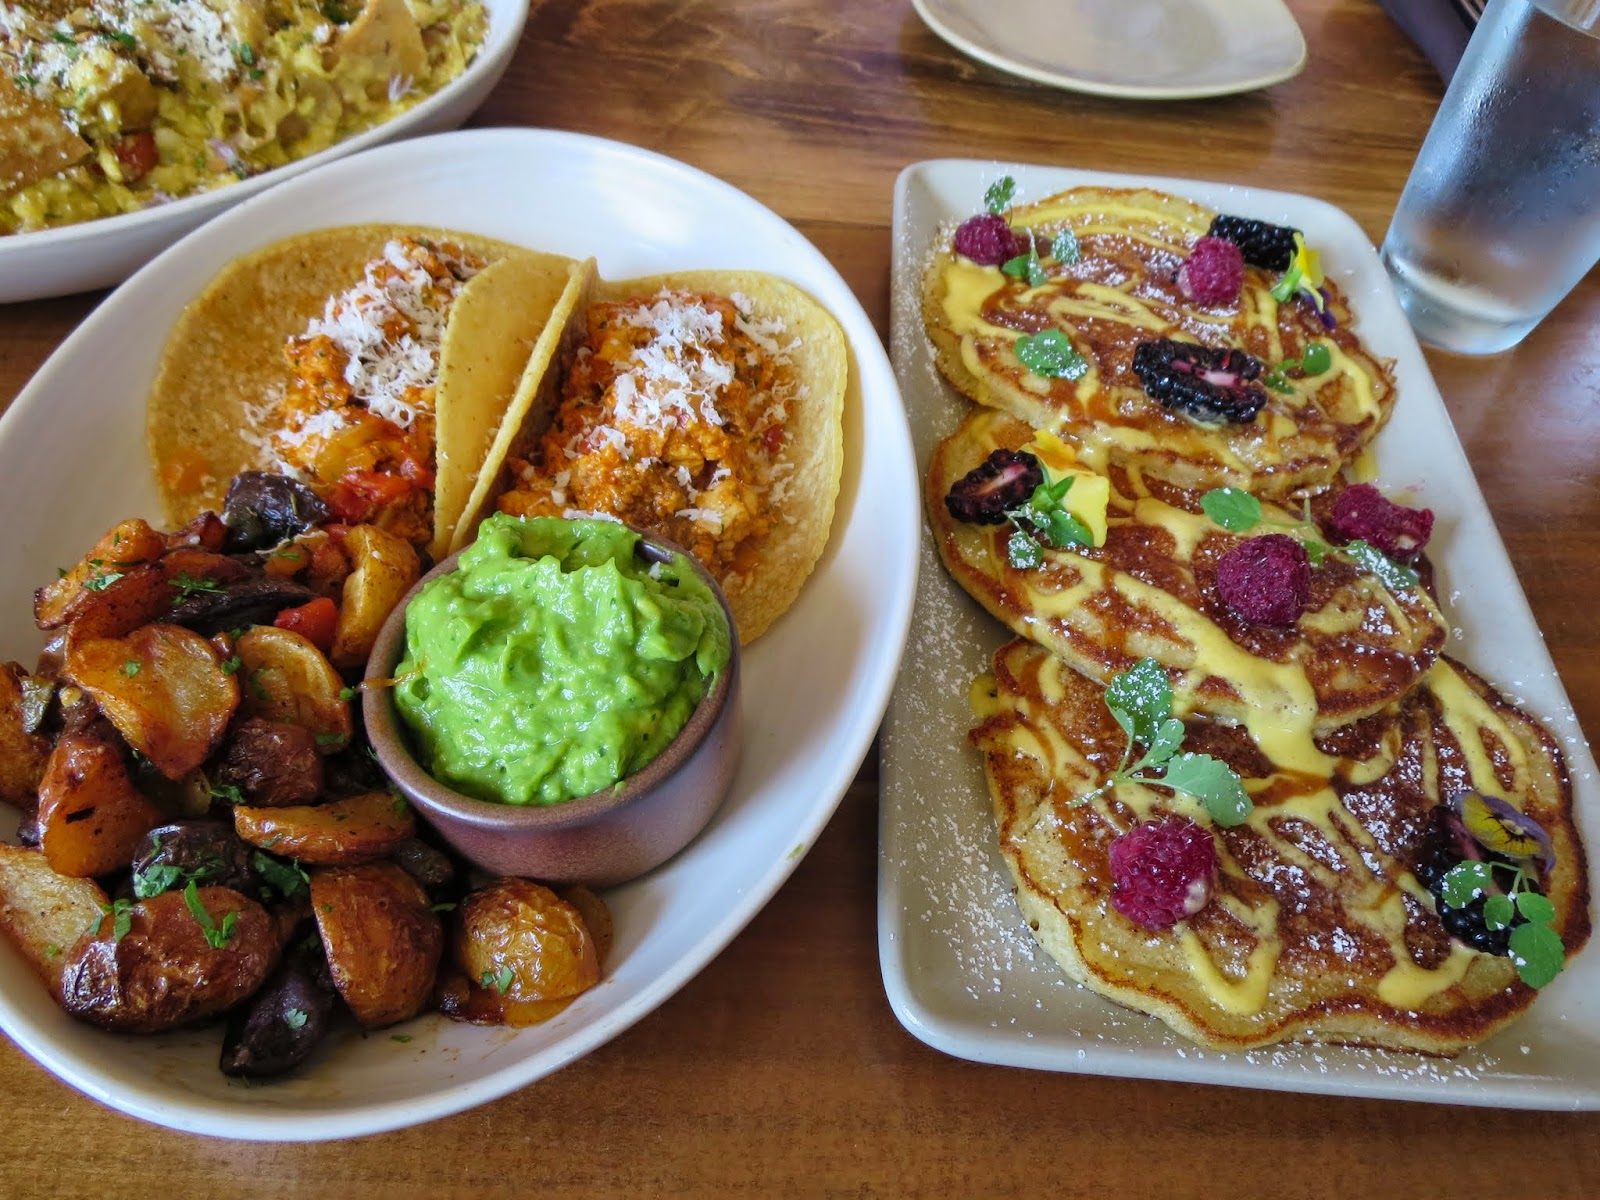 Breakfast tacos and pancakes at Padrecito in San Francisco